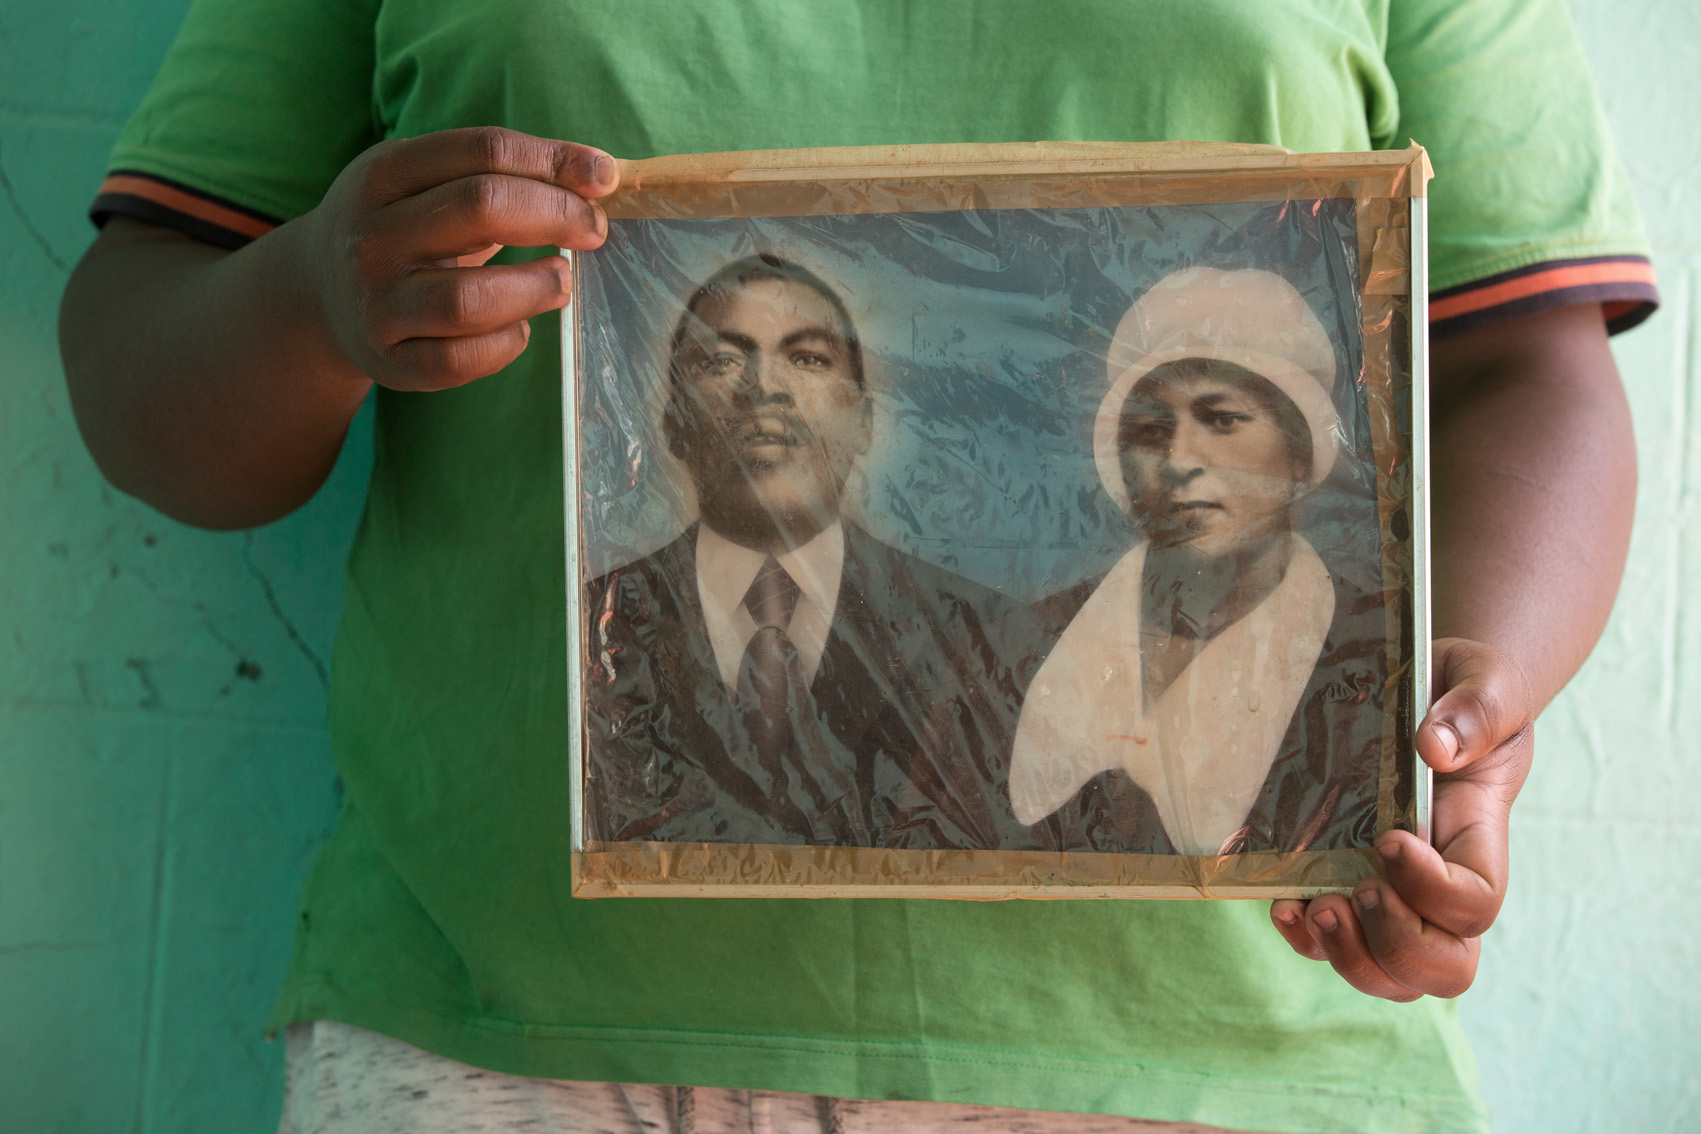 Plastic-wrapped, hand-coloured black-and-white photograph of the great-grandparents, Samuel Tlale Nkone and Rosta Nobelungu Nkone.